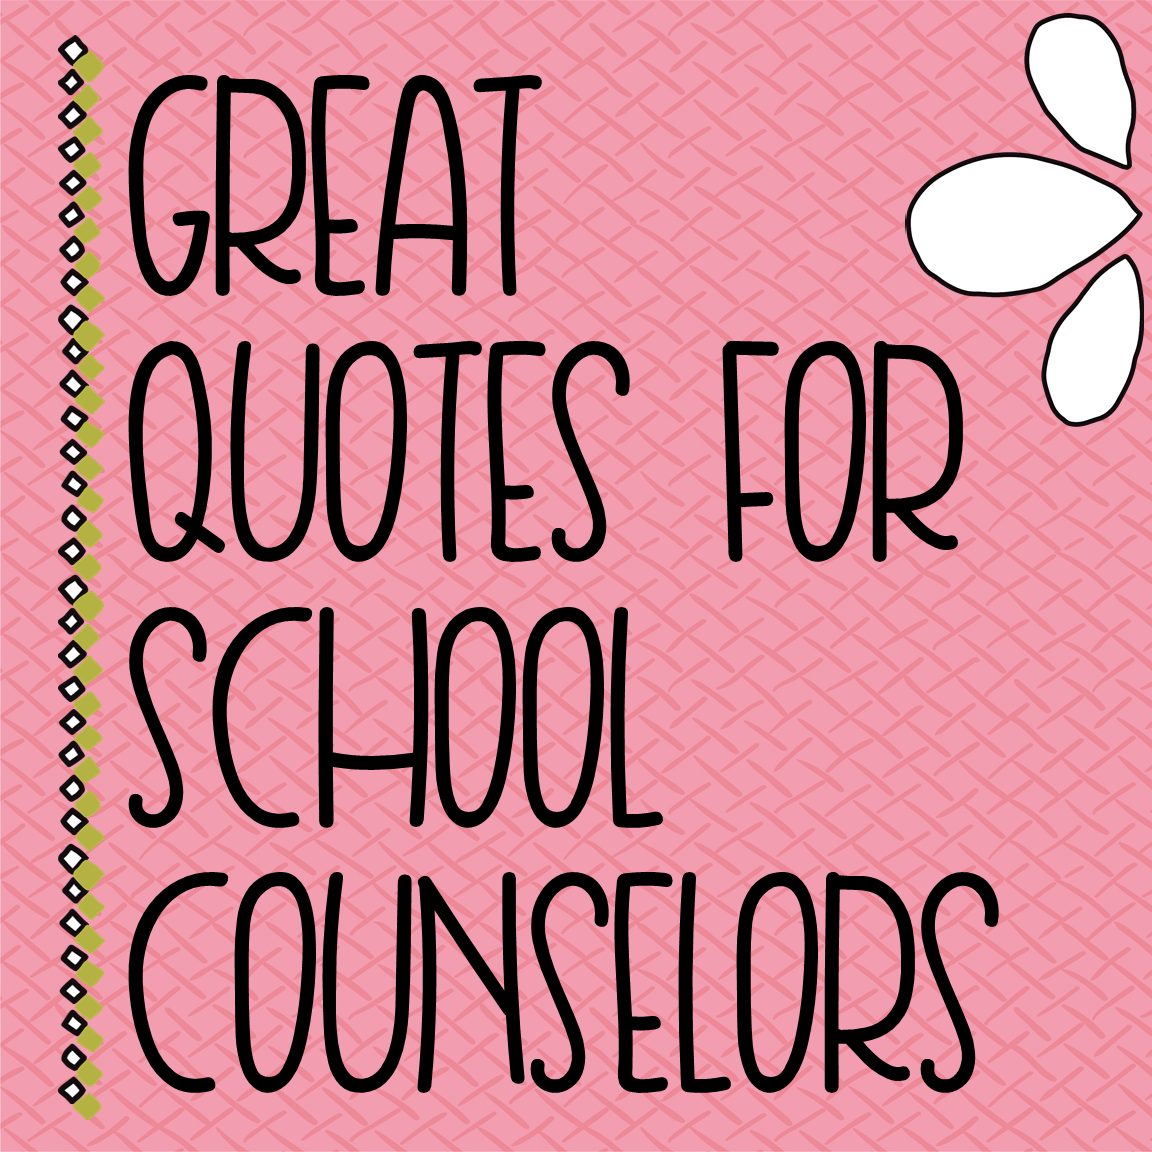 Quotes | Guidance Lessons | College counseling, School counseling